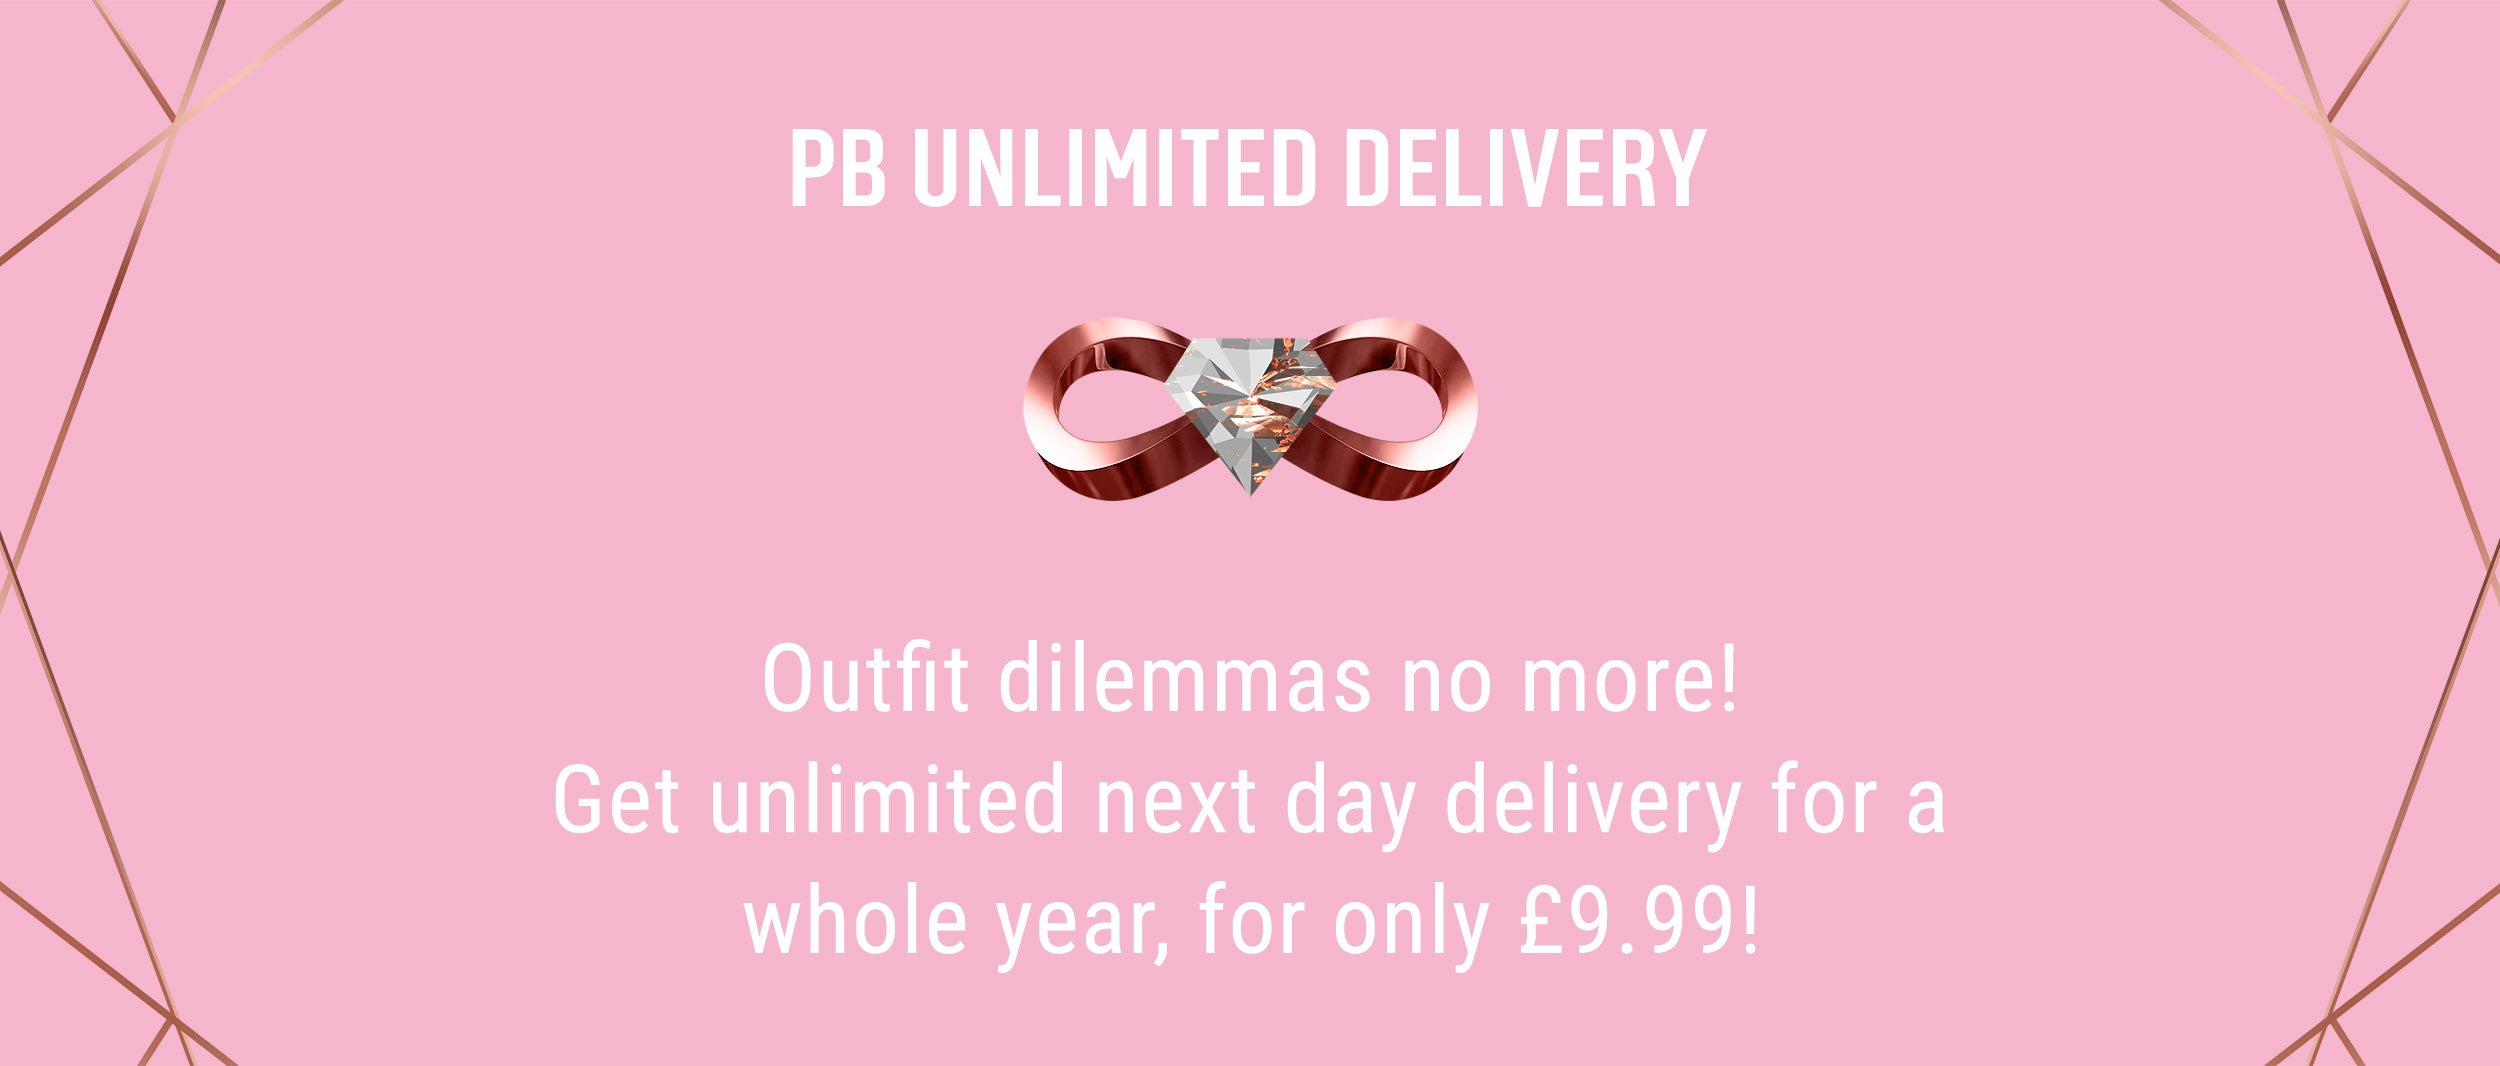 PB Unlimited Delivery - Outfit dilemmas no more! Get unlimited next day delivery for a whole year, for only £9.99!